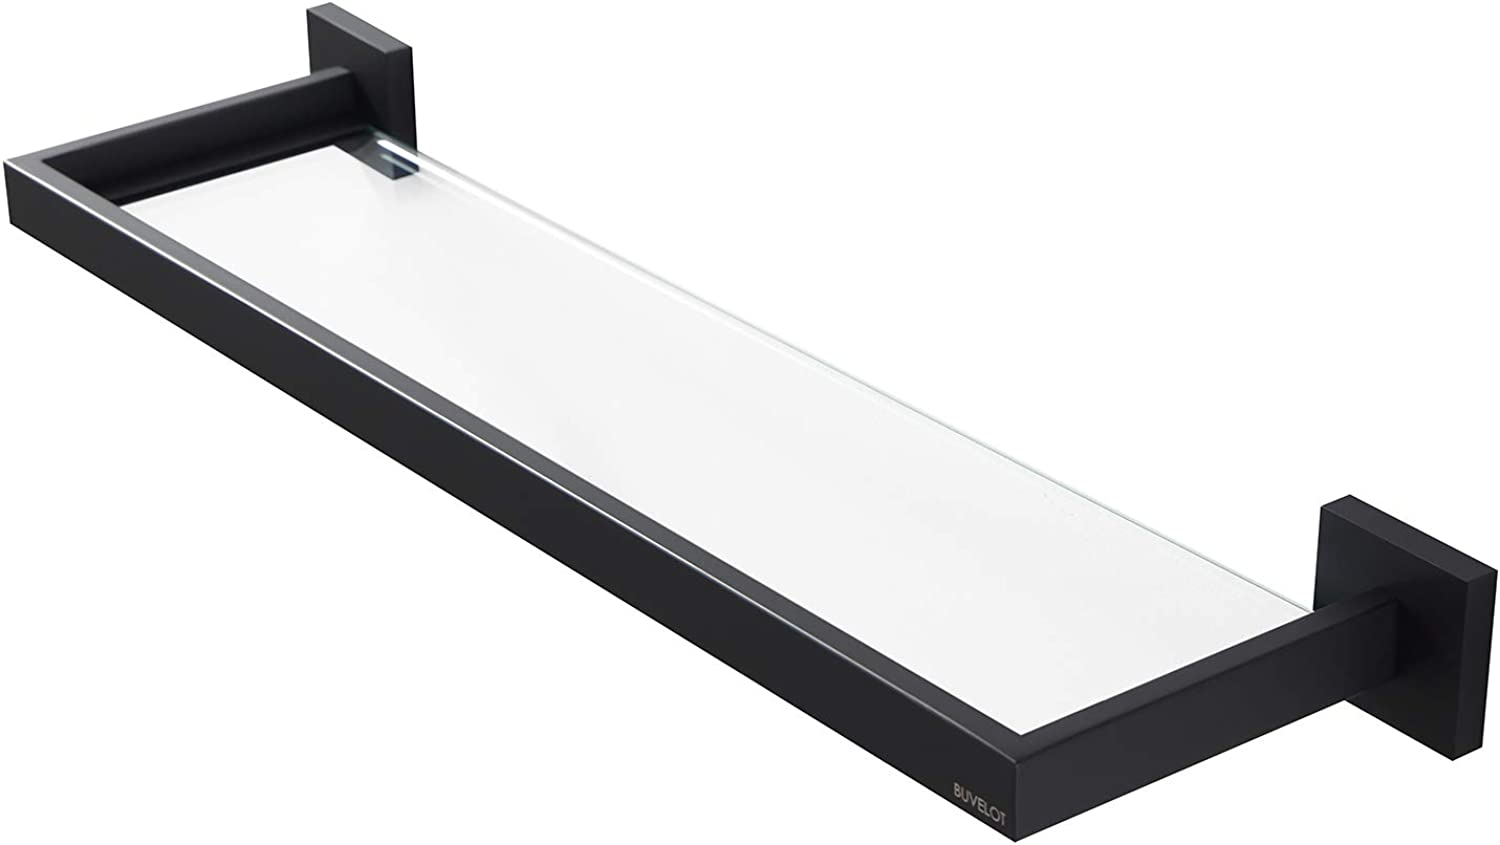 BUVELOT 071090-MB Bathroom Tempered Glass Shelf Modern Rectangular,Matte Black